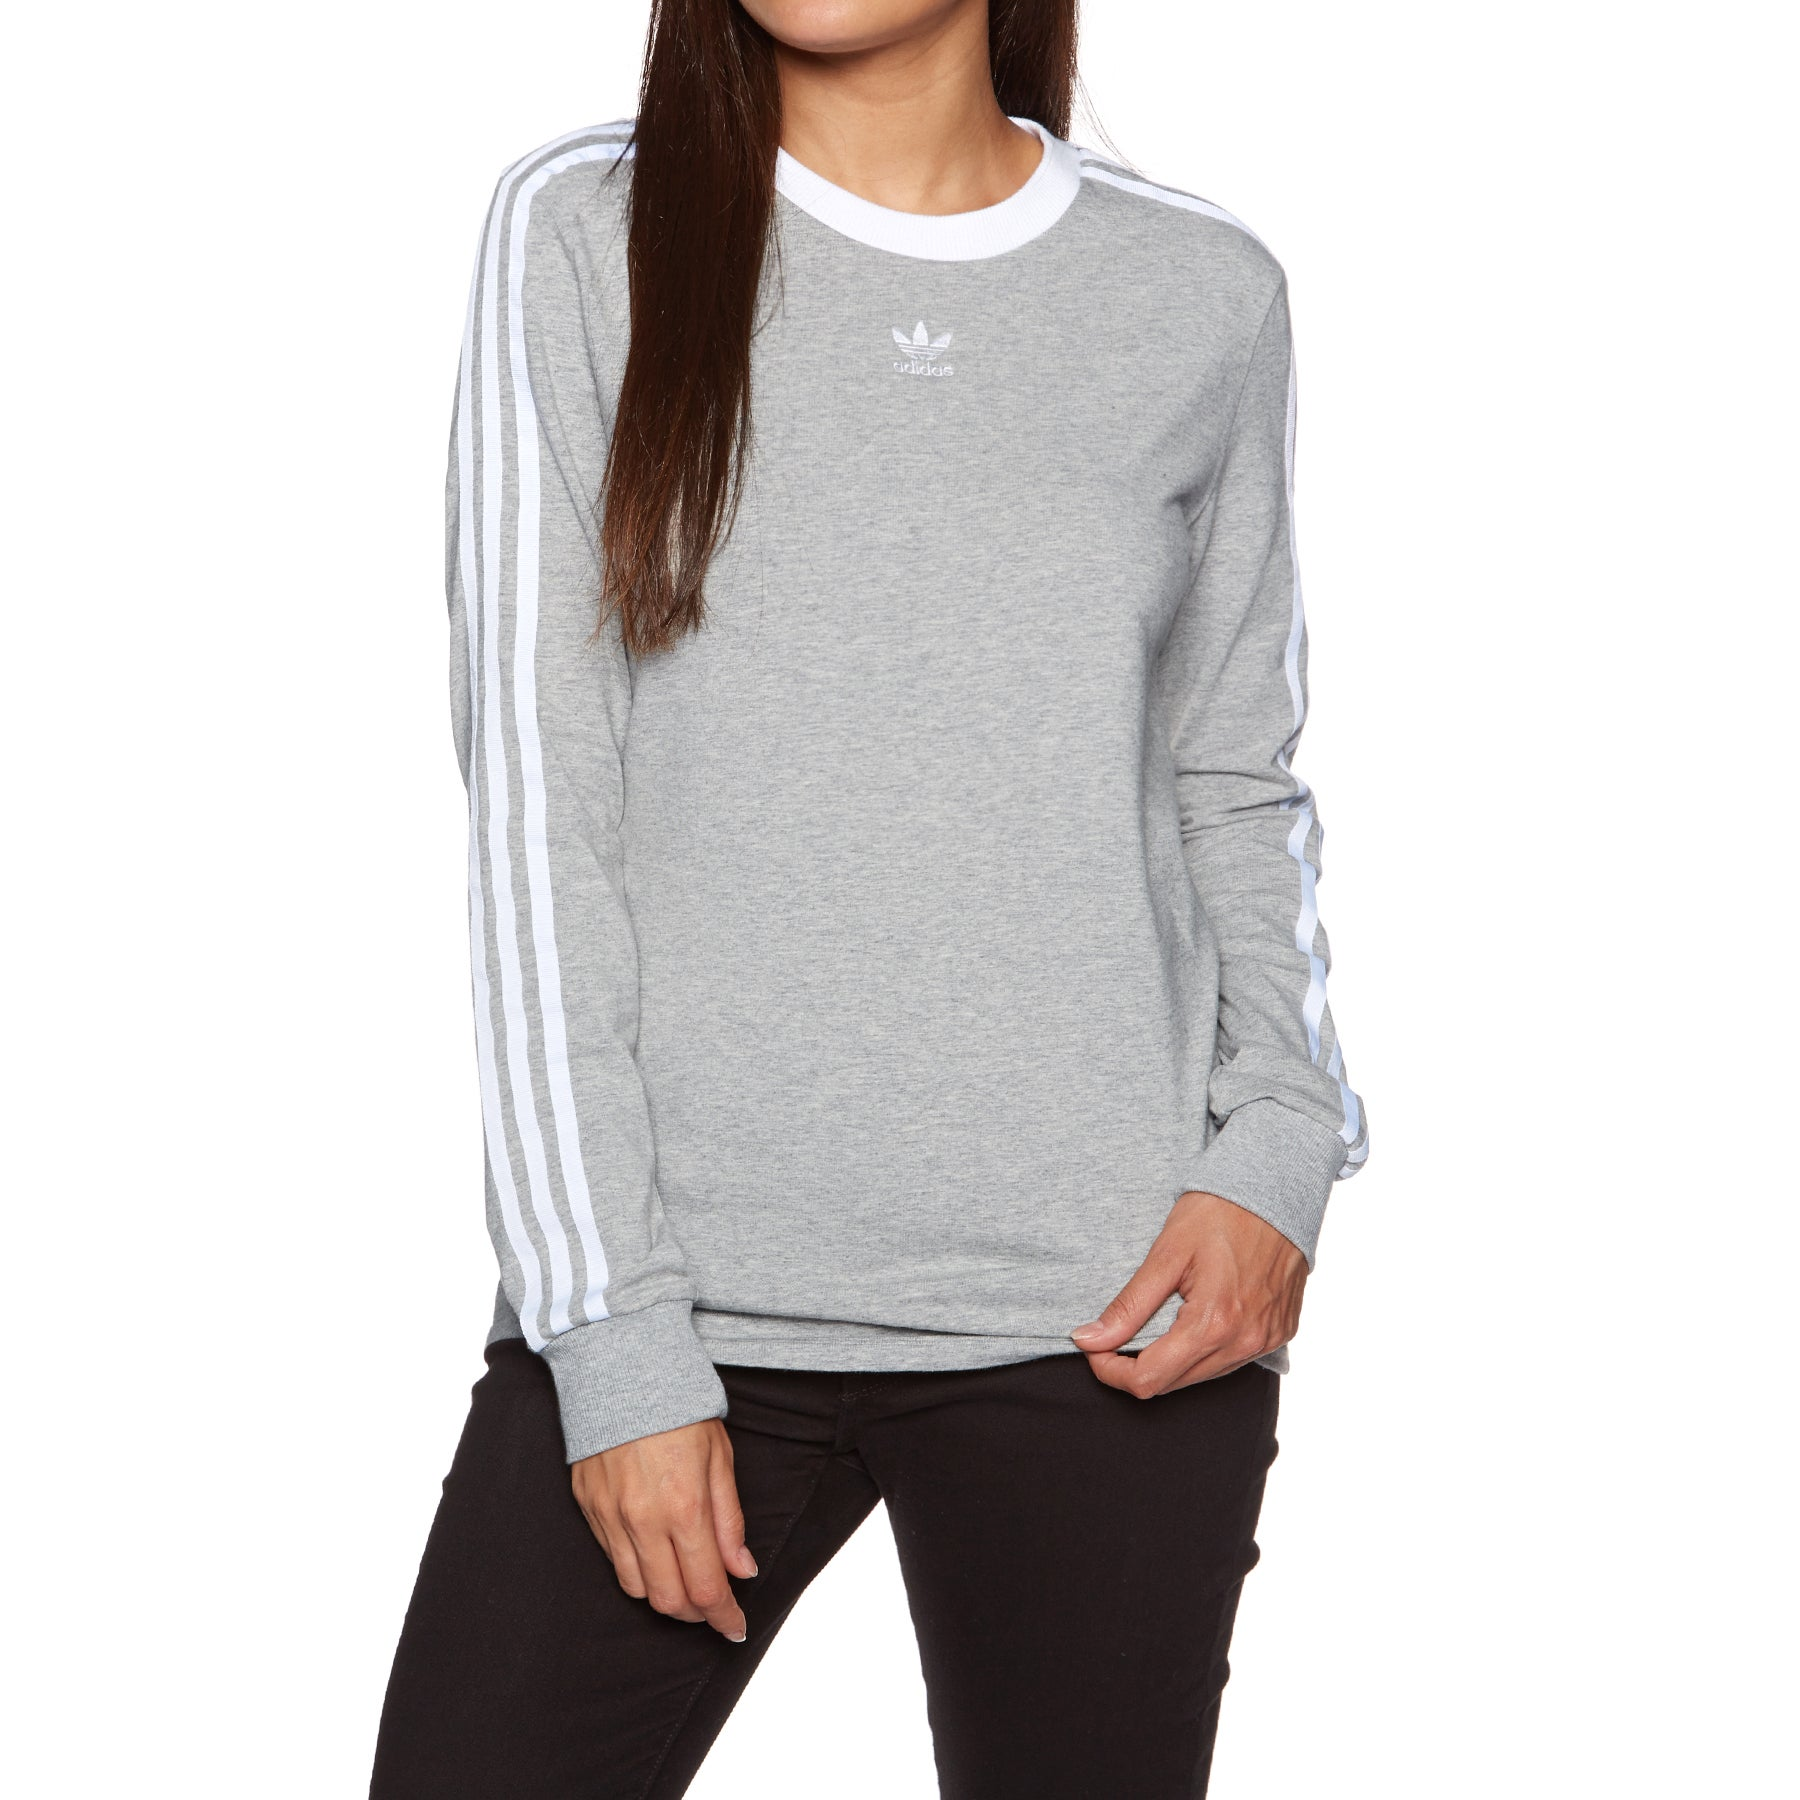 8874e6df737 Adidas Originals 3 Stripes Womens Long Sleeve T-Shirt available from ...